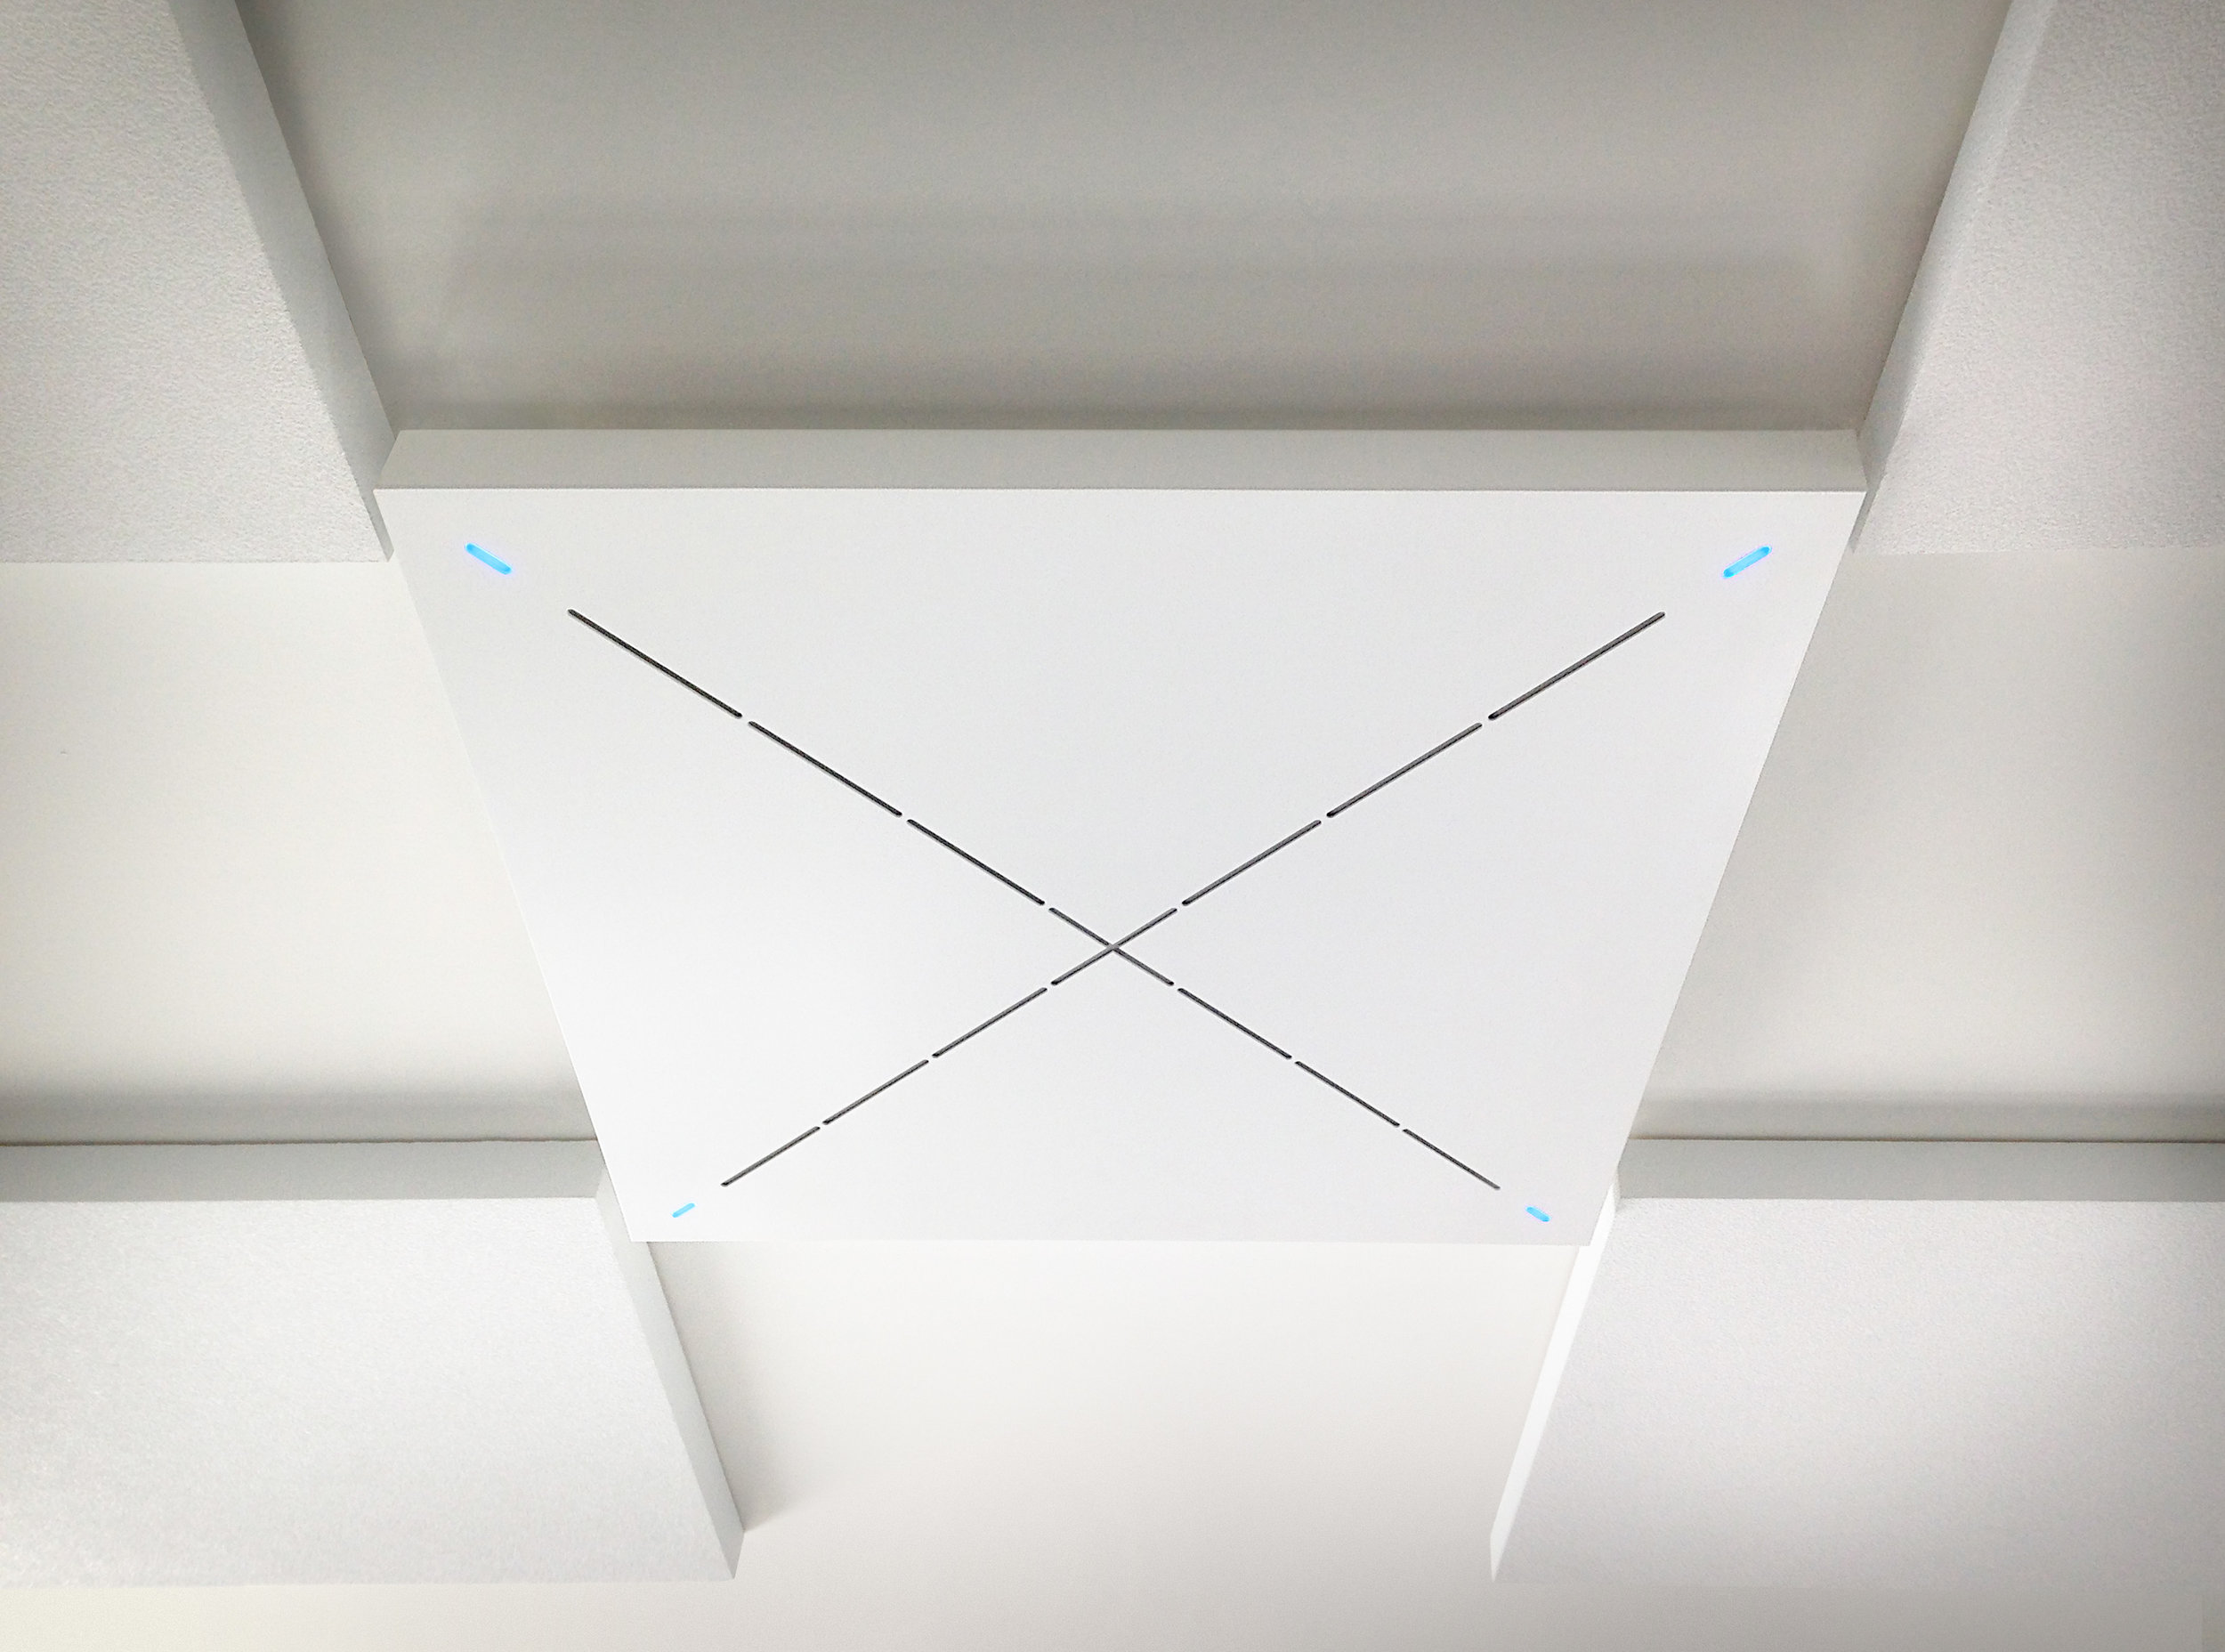 The Sennheiser Speechline Ceiling Microphone is a central feature of this ceiling, with it's distinctive X-shaped microphone array, this powerful beamforming microphone can isolate voices incredibly clearly out of large spaces with relatively poor acoustics.